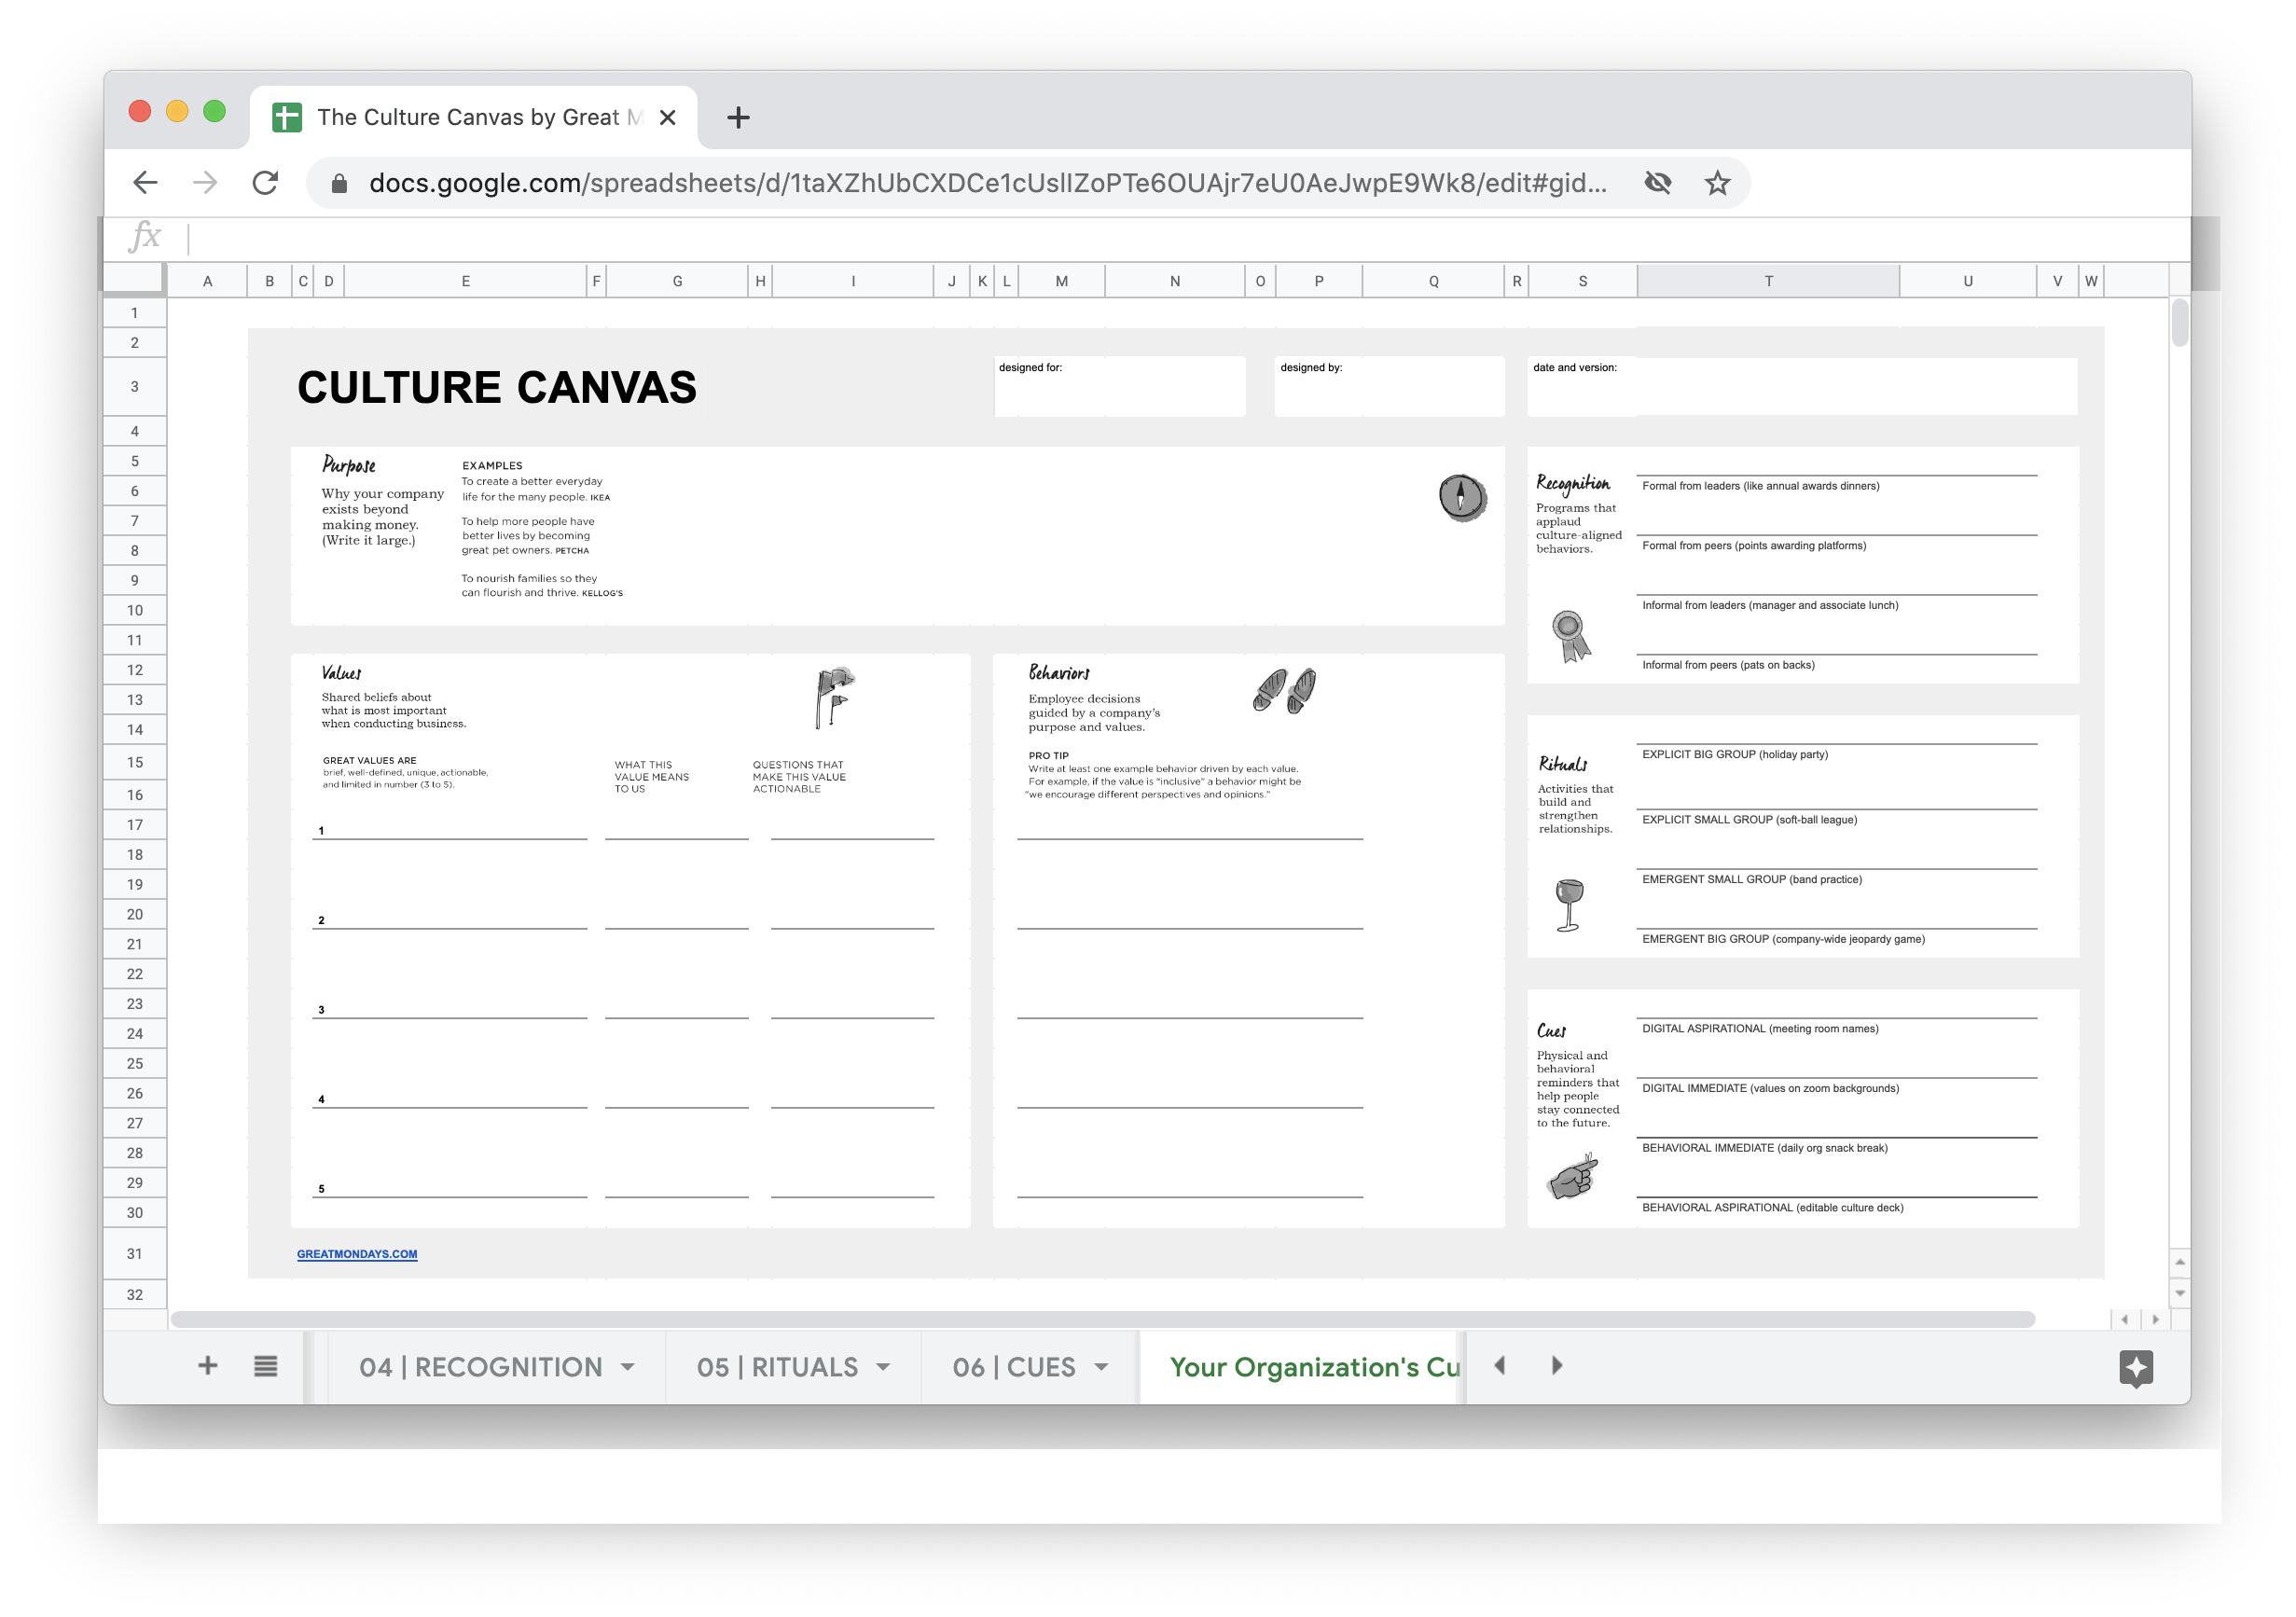 The Culture Canvas 2.0. Now, interactive!